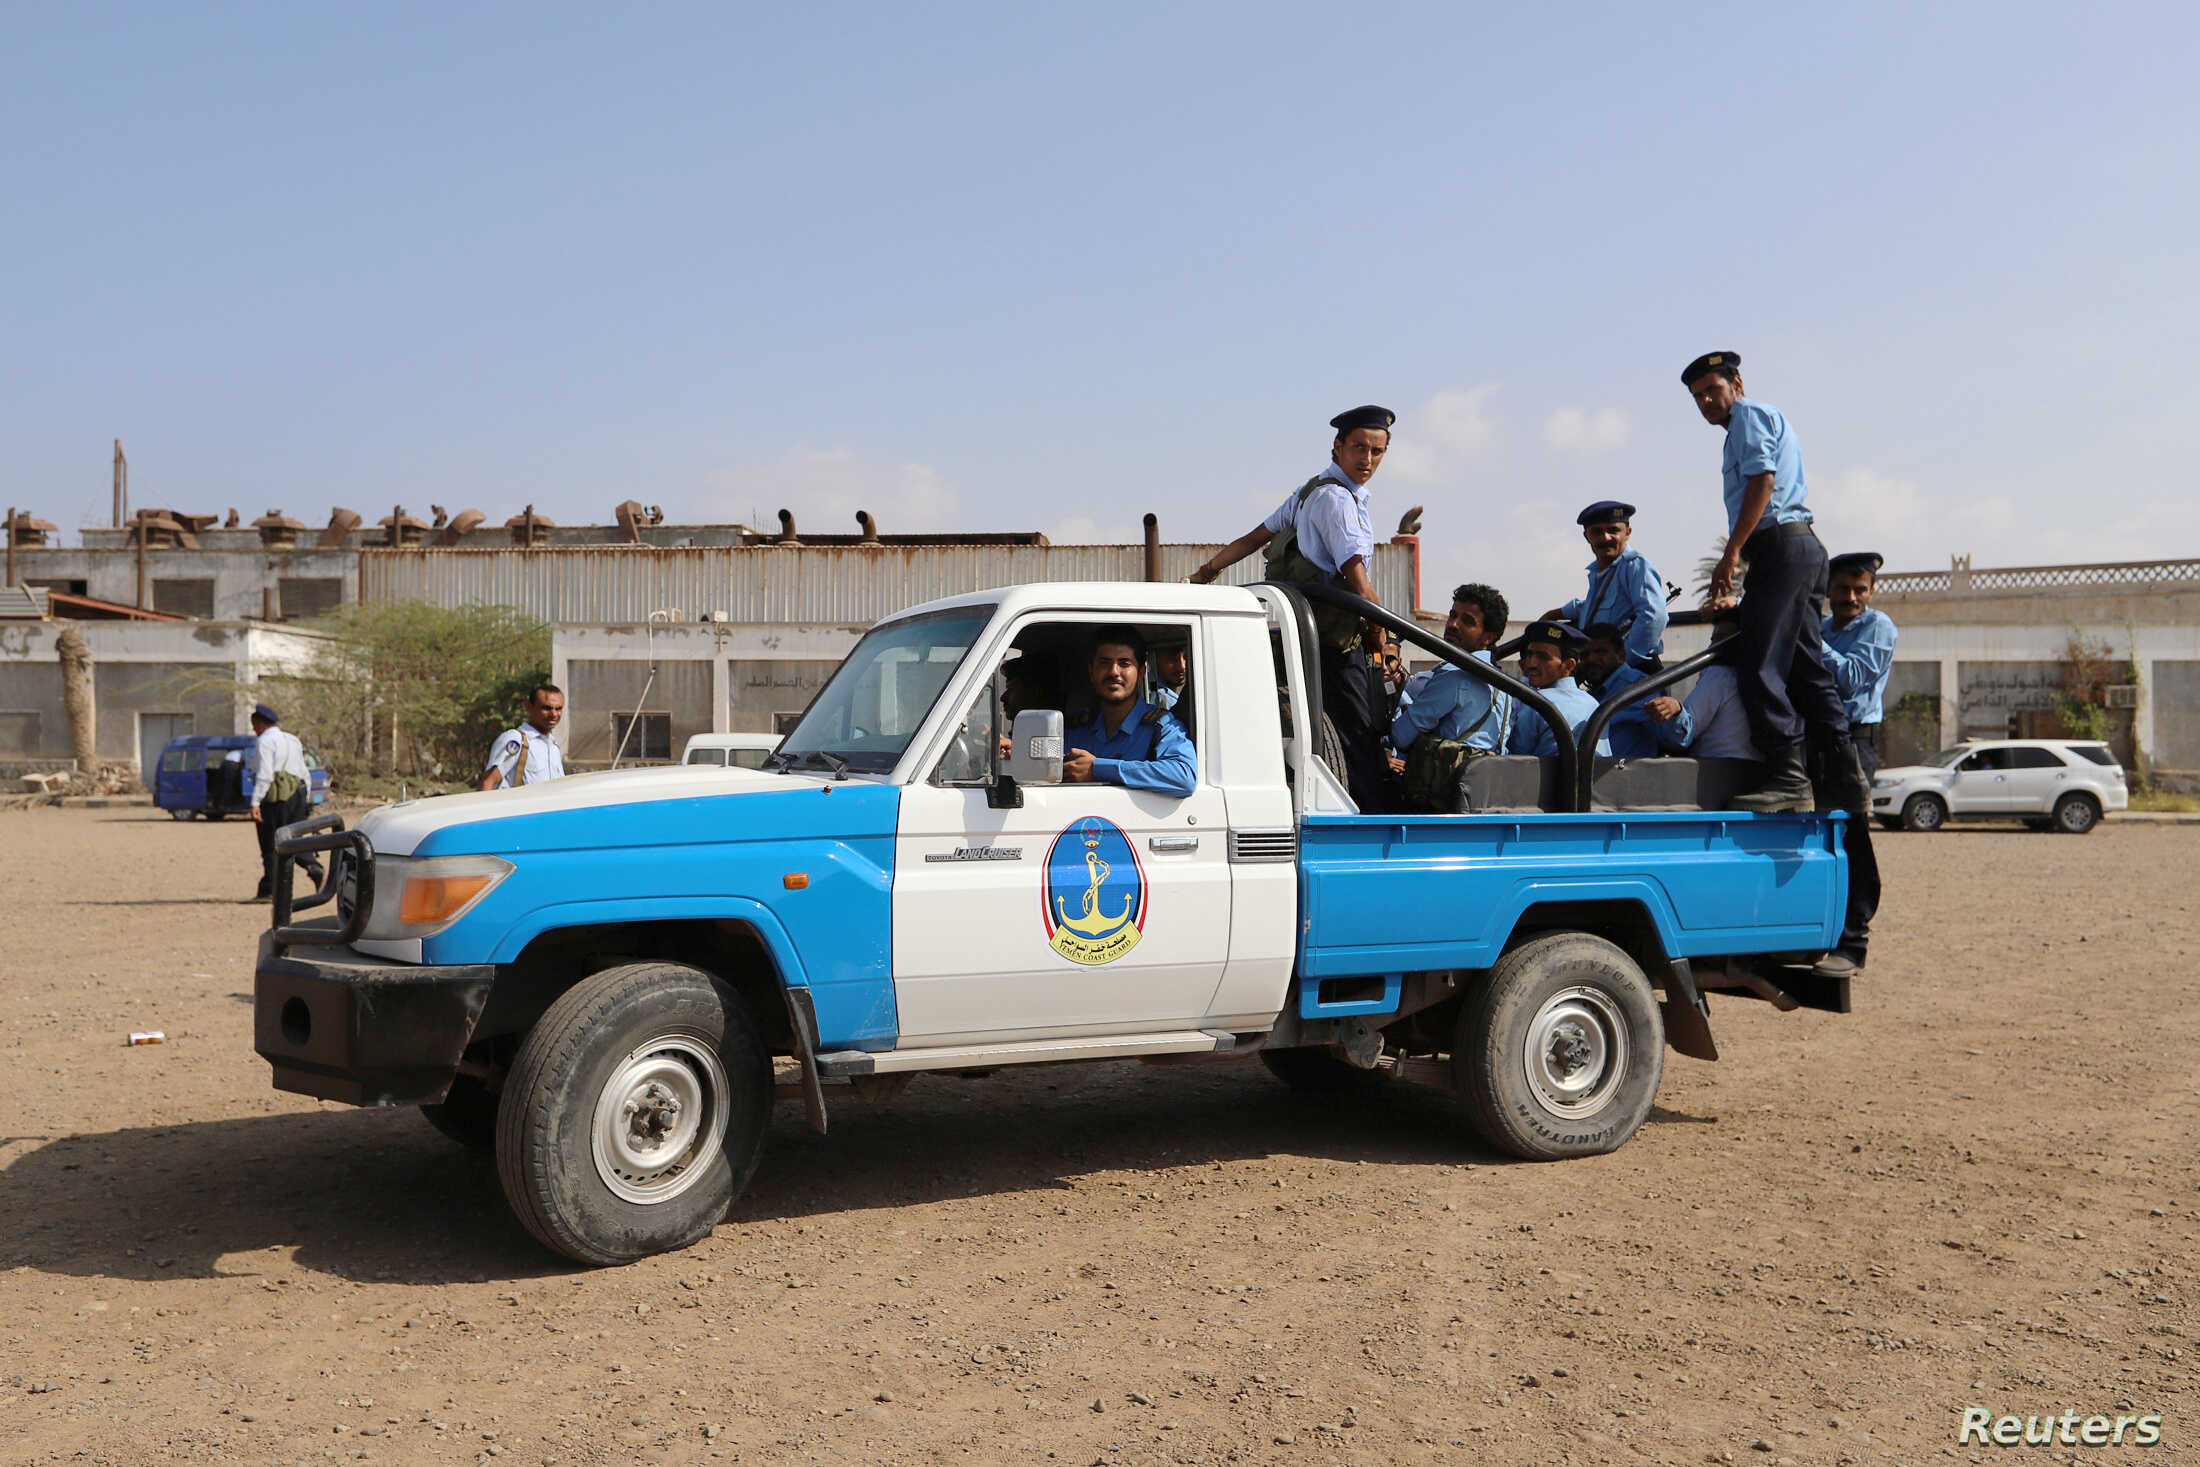 Members of a Yemeni coast guard force ride on the back of a petrol truck during their deployment as part of a U.N.-sponsored peace agreement signed in Sweden earlier this month, at the Red Sea city of Hodeidah, Yemen December 29, 2018.